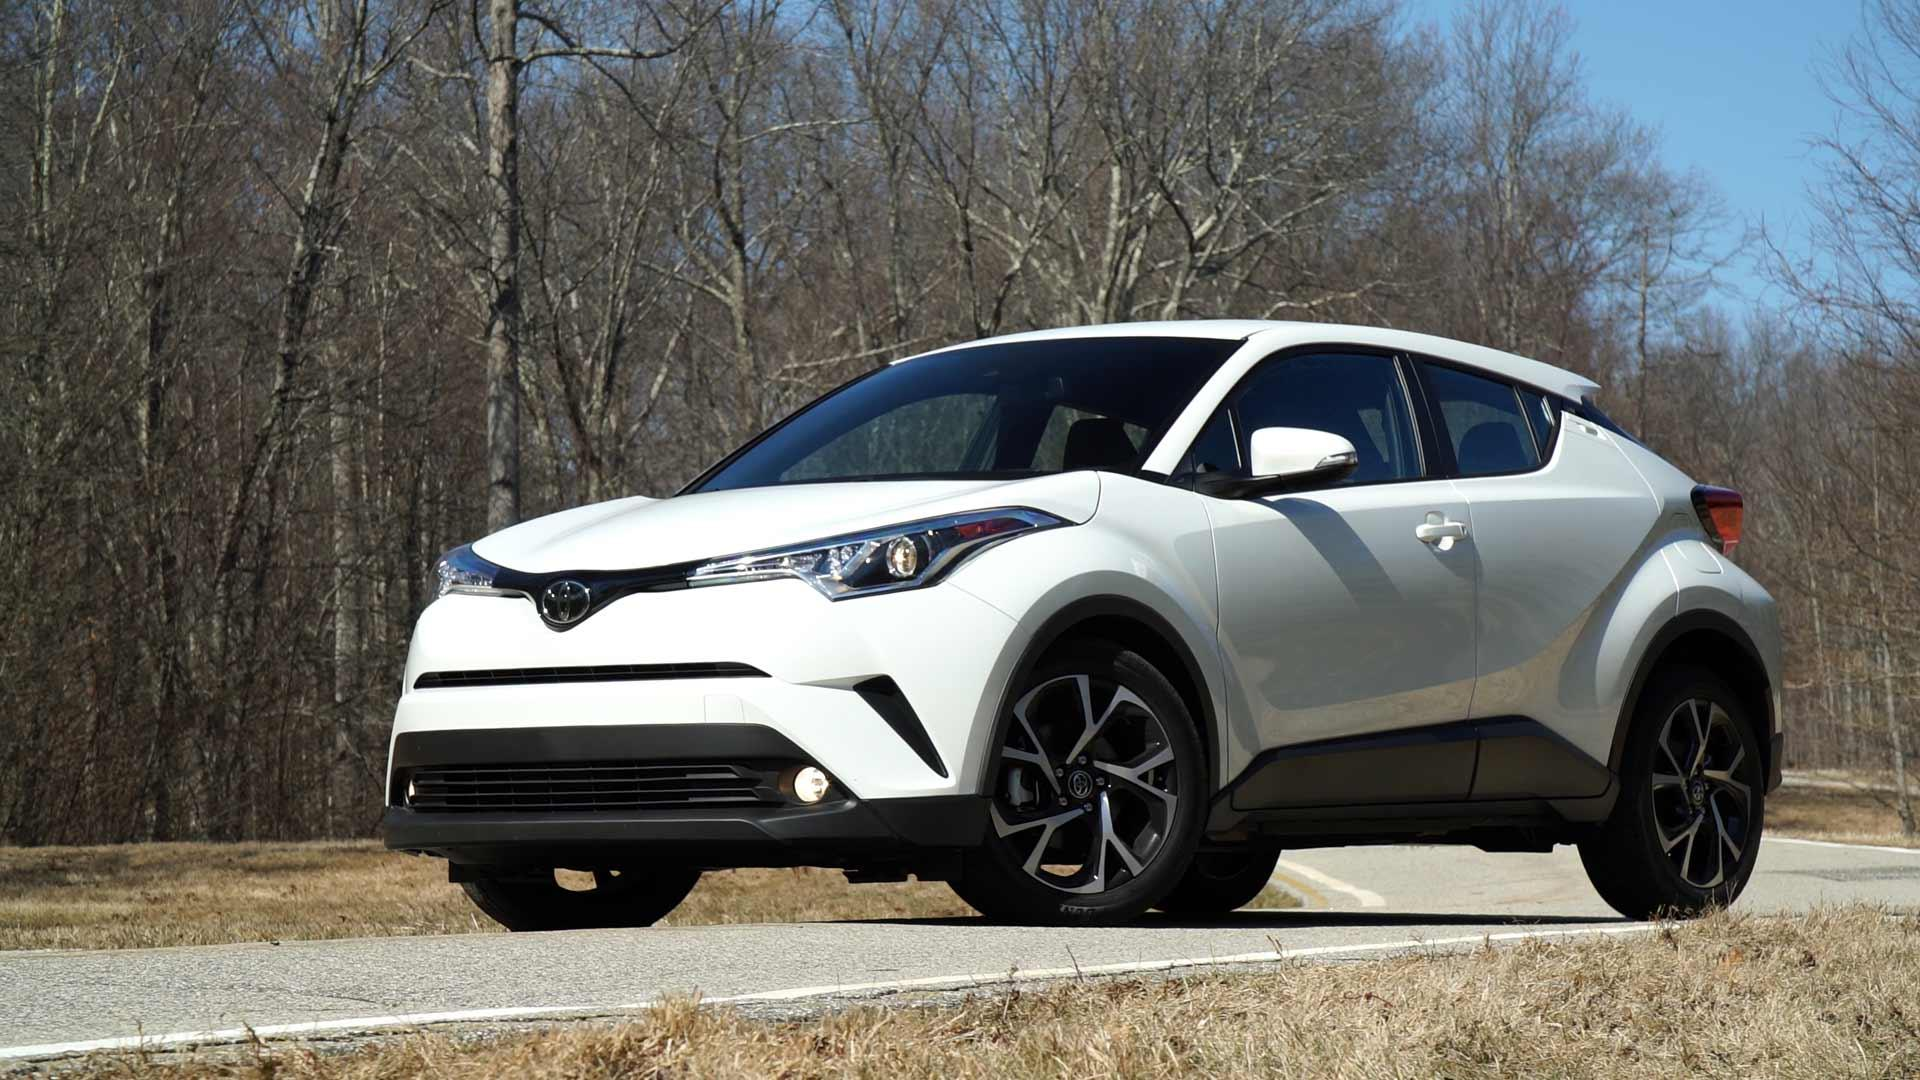 2018 toyota c hr suv targets a younger audience consumer reports. Black Bedroom Furniture Sets. Home Design Ideas